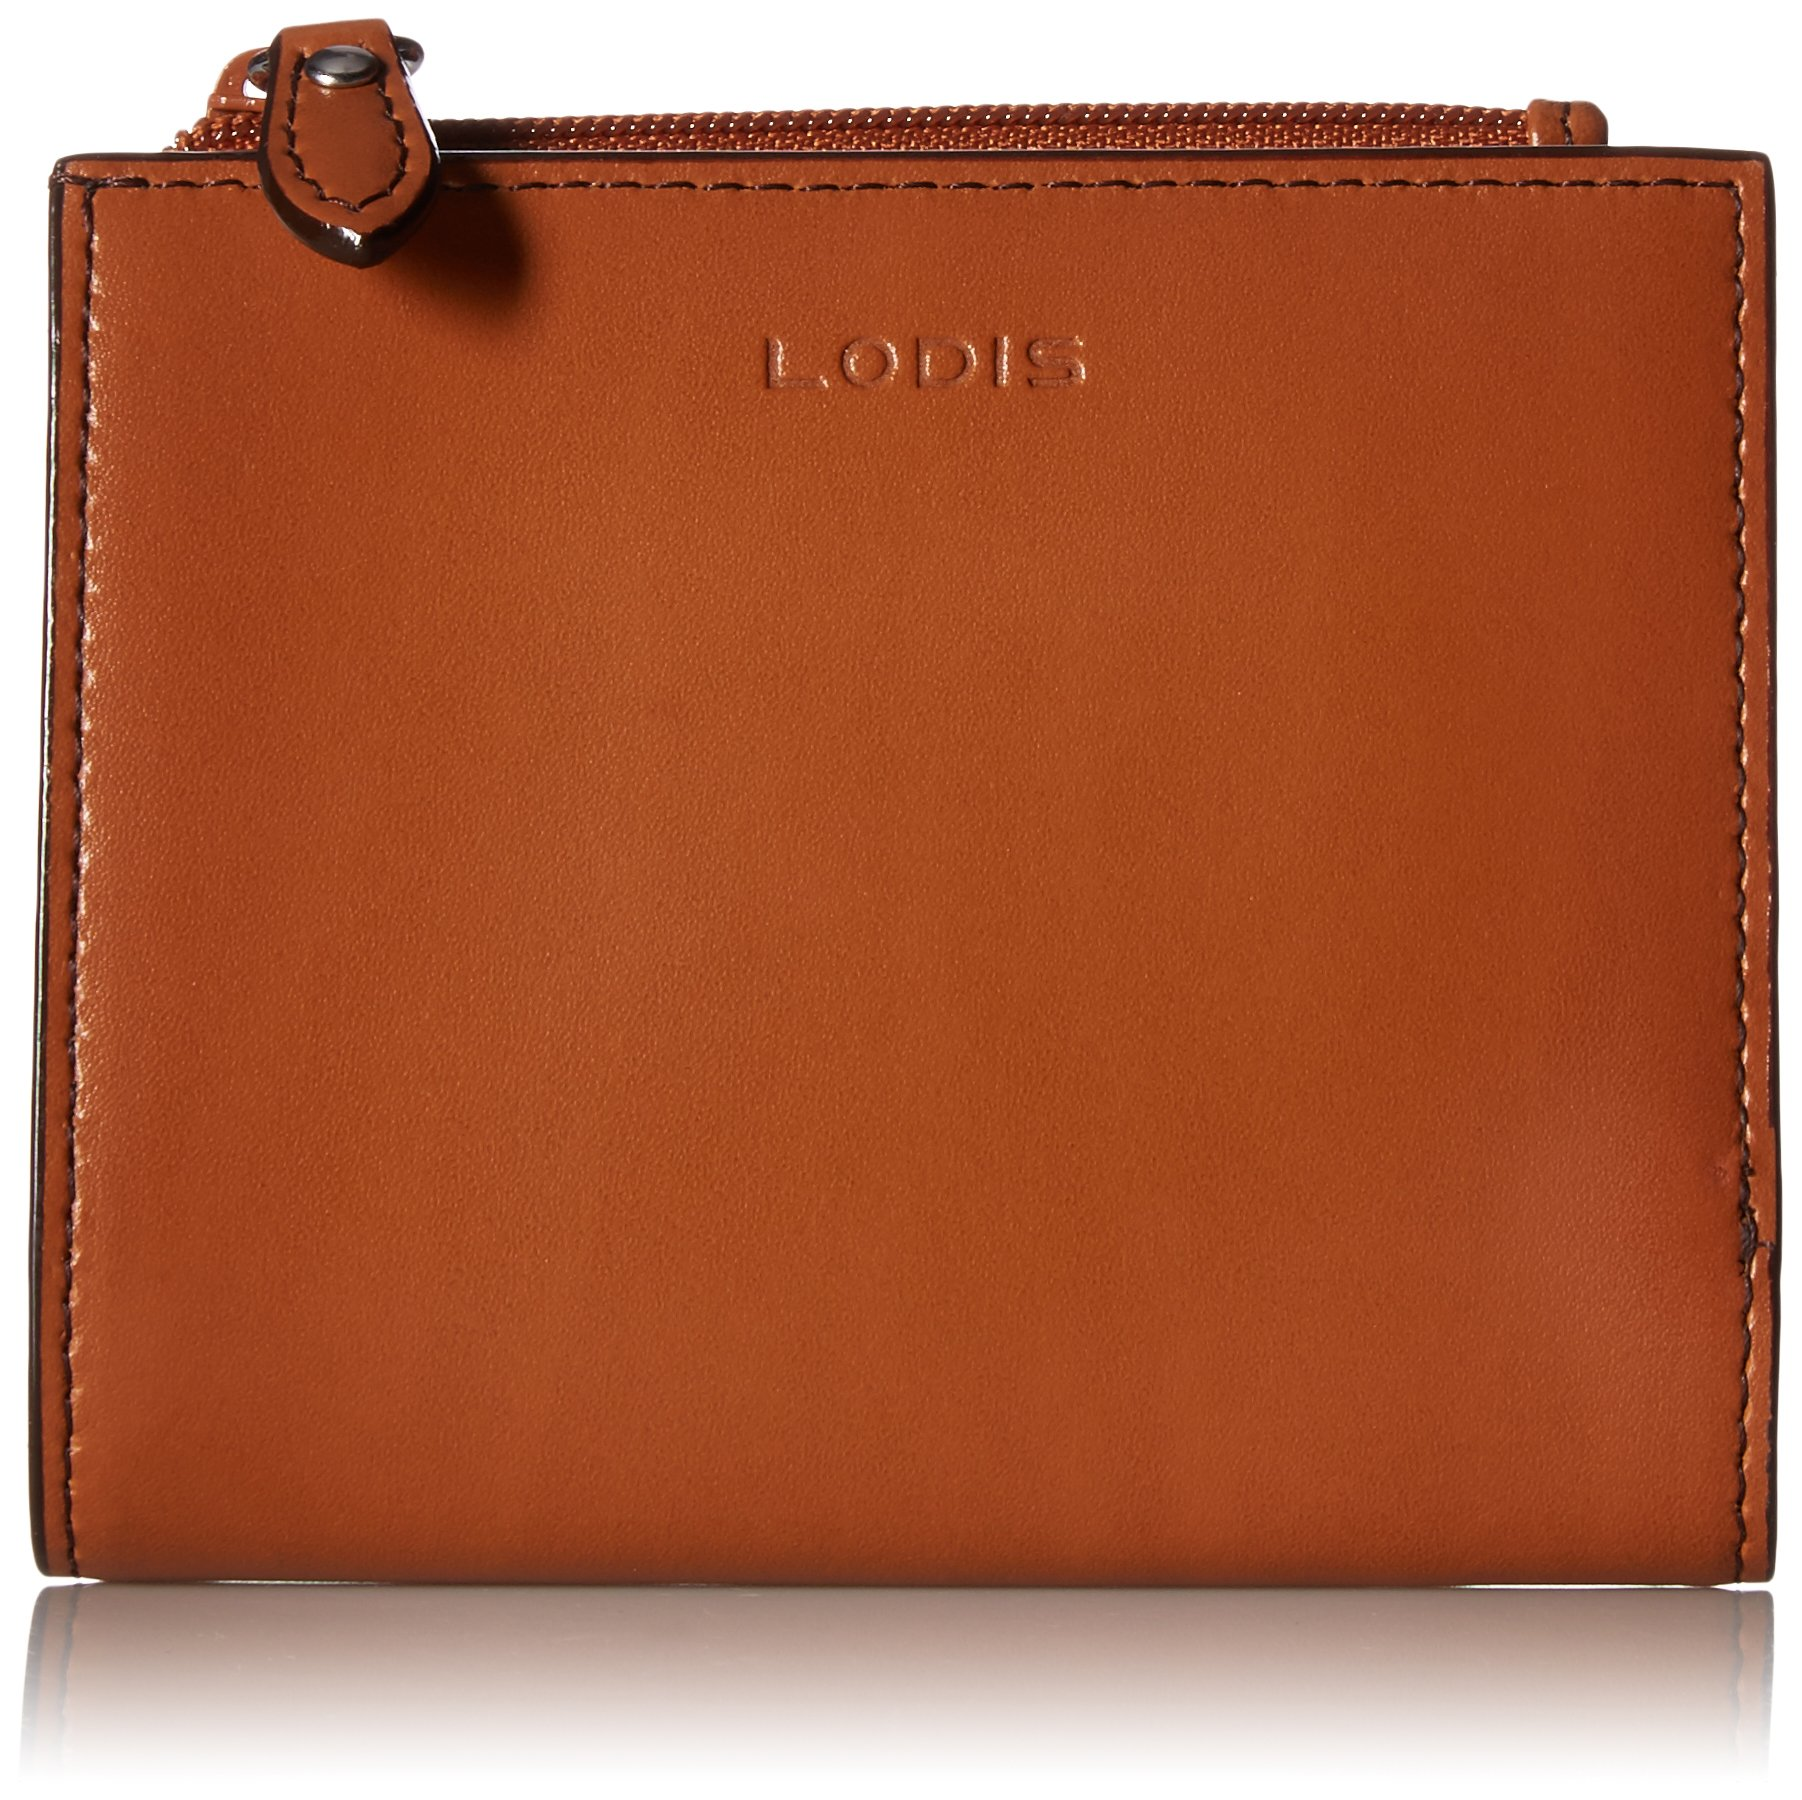 Lodis Women's Audrey Aldis Wallet Tof Coin Purse Toffee One Size